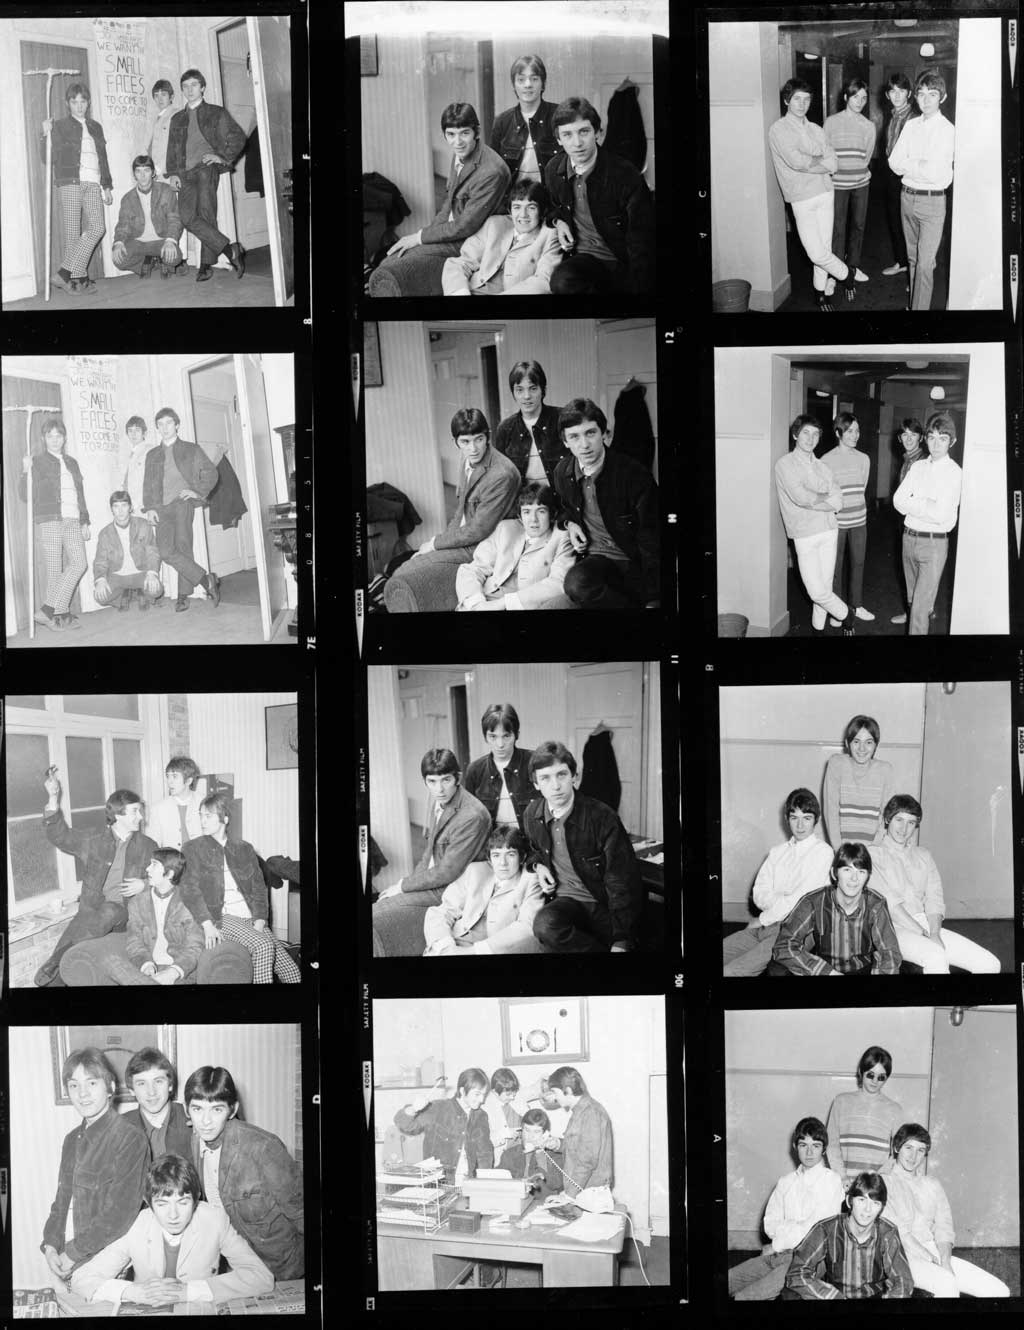 The Small Faces Photo Negatives